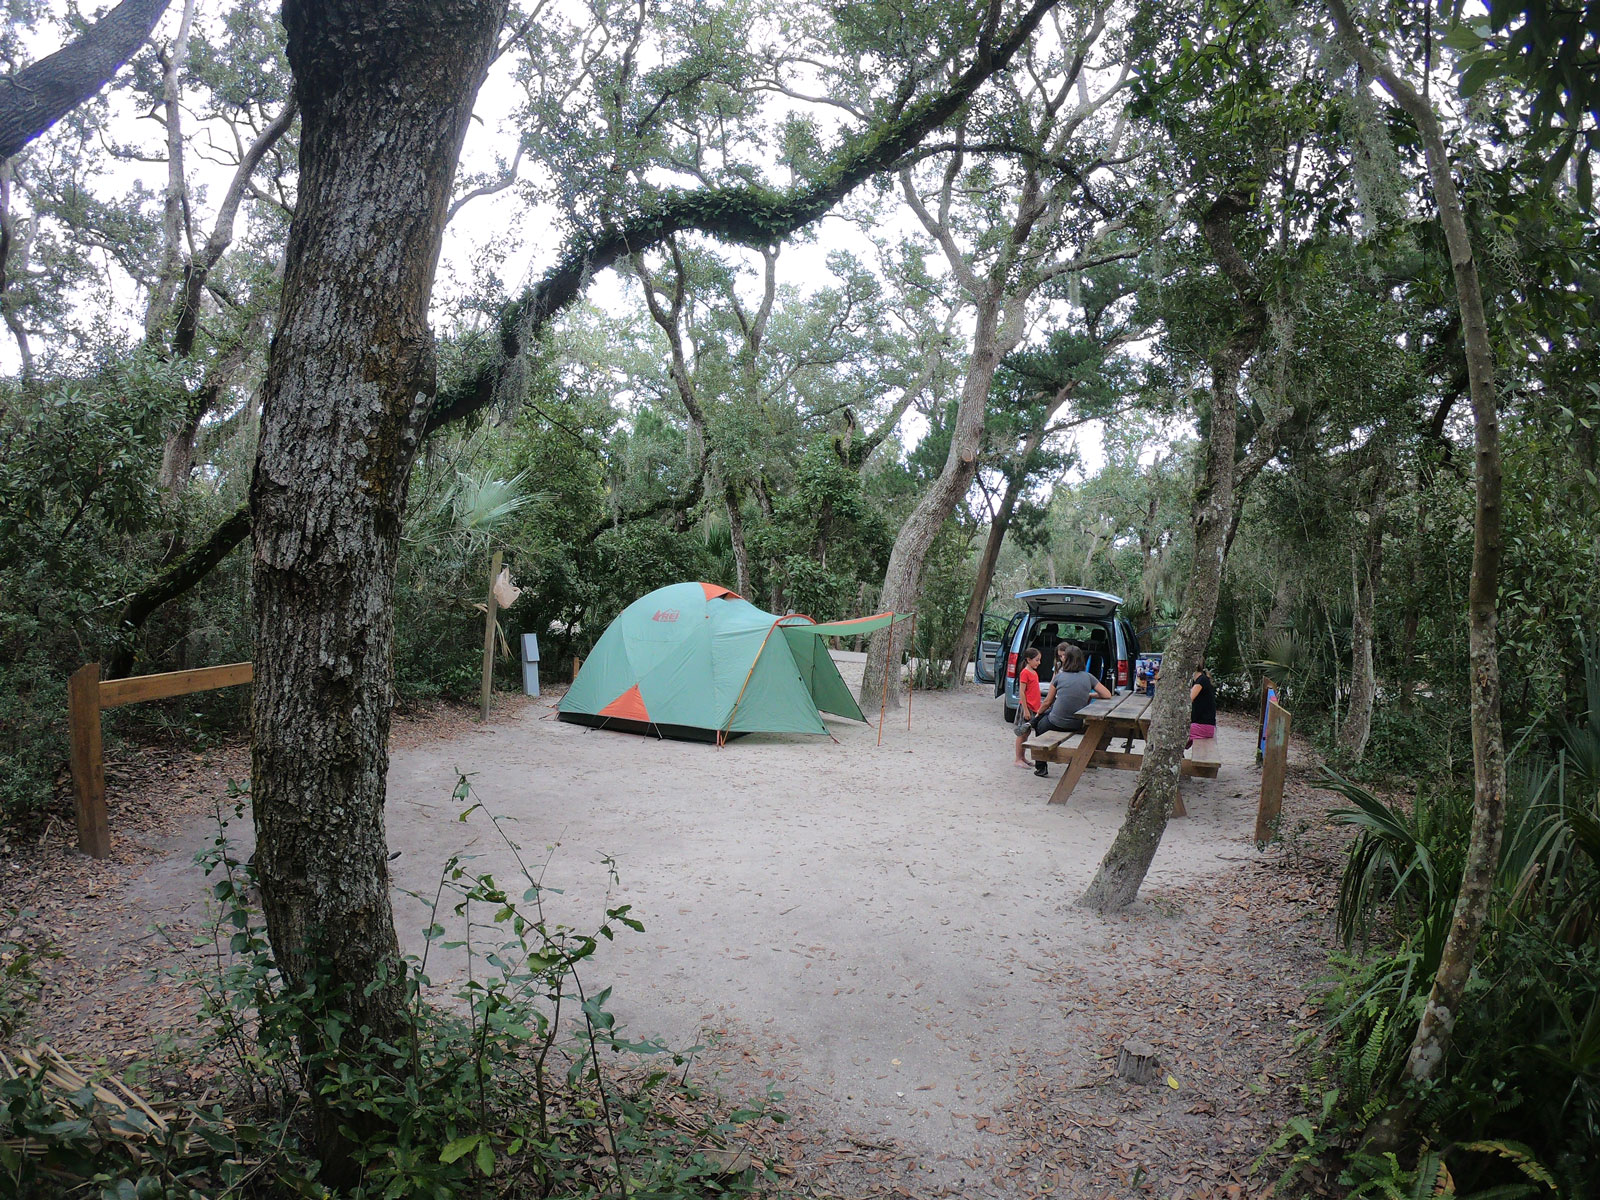 Anastasia State Park campsite with picnic table, green tent, van, and campers